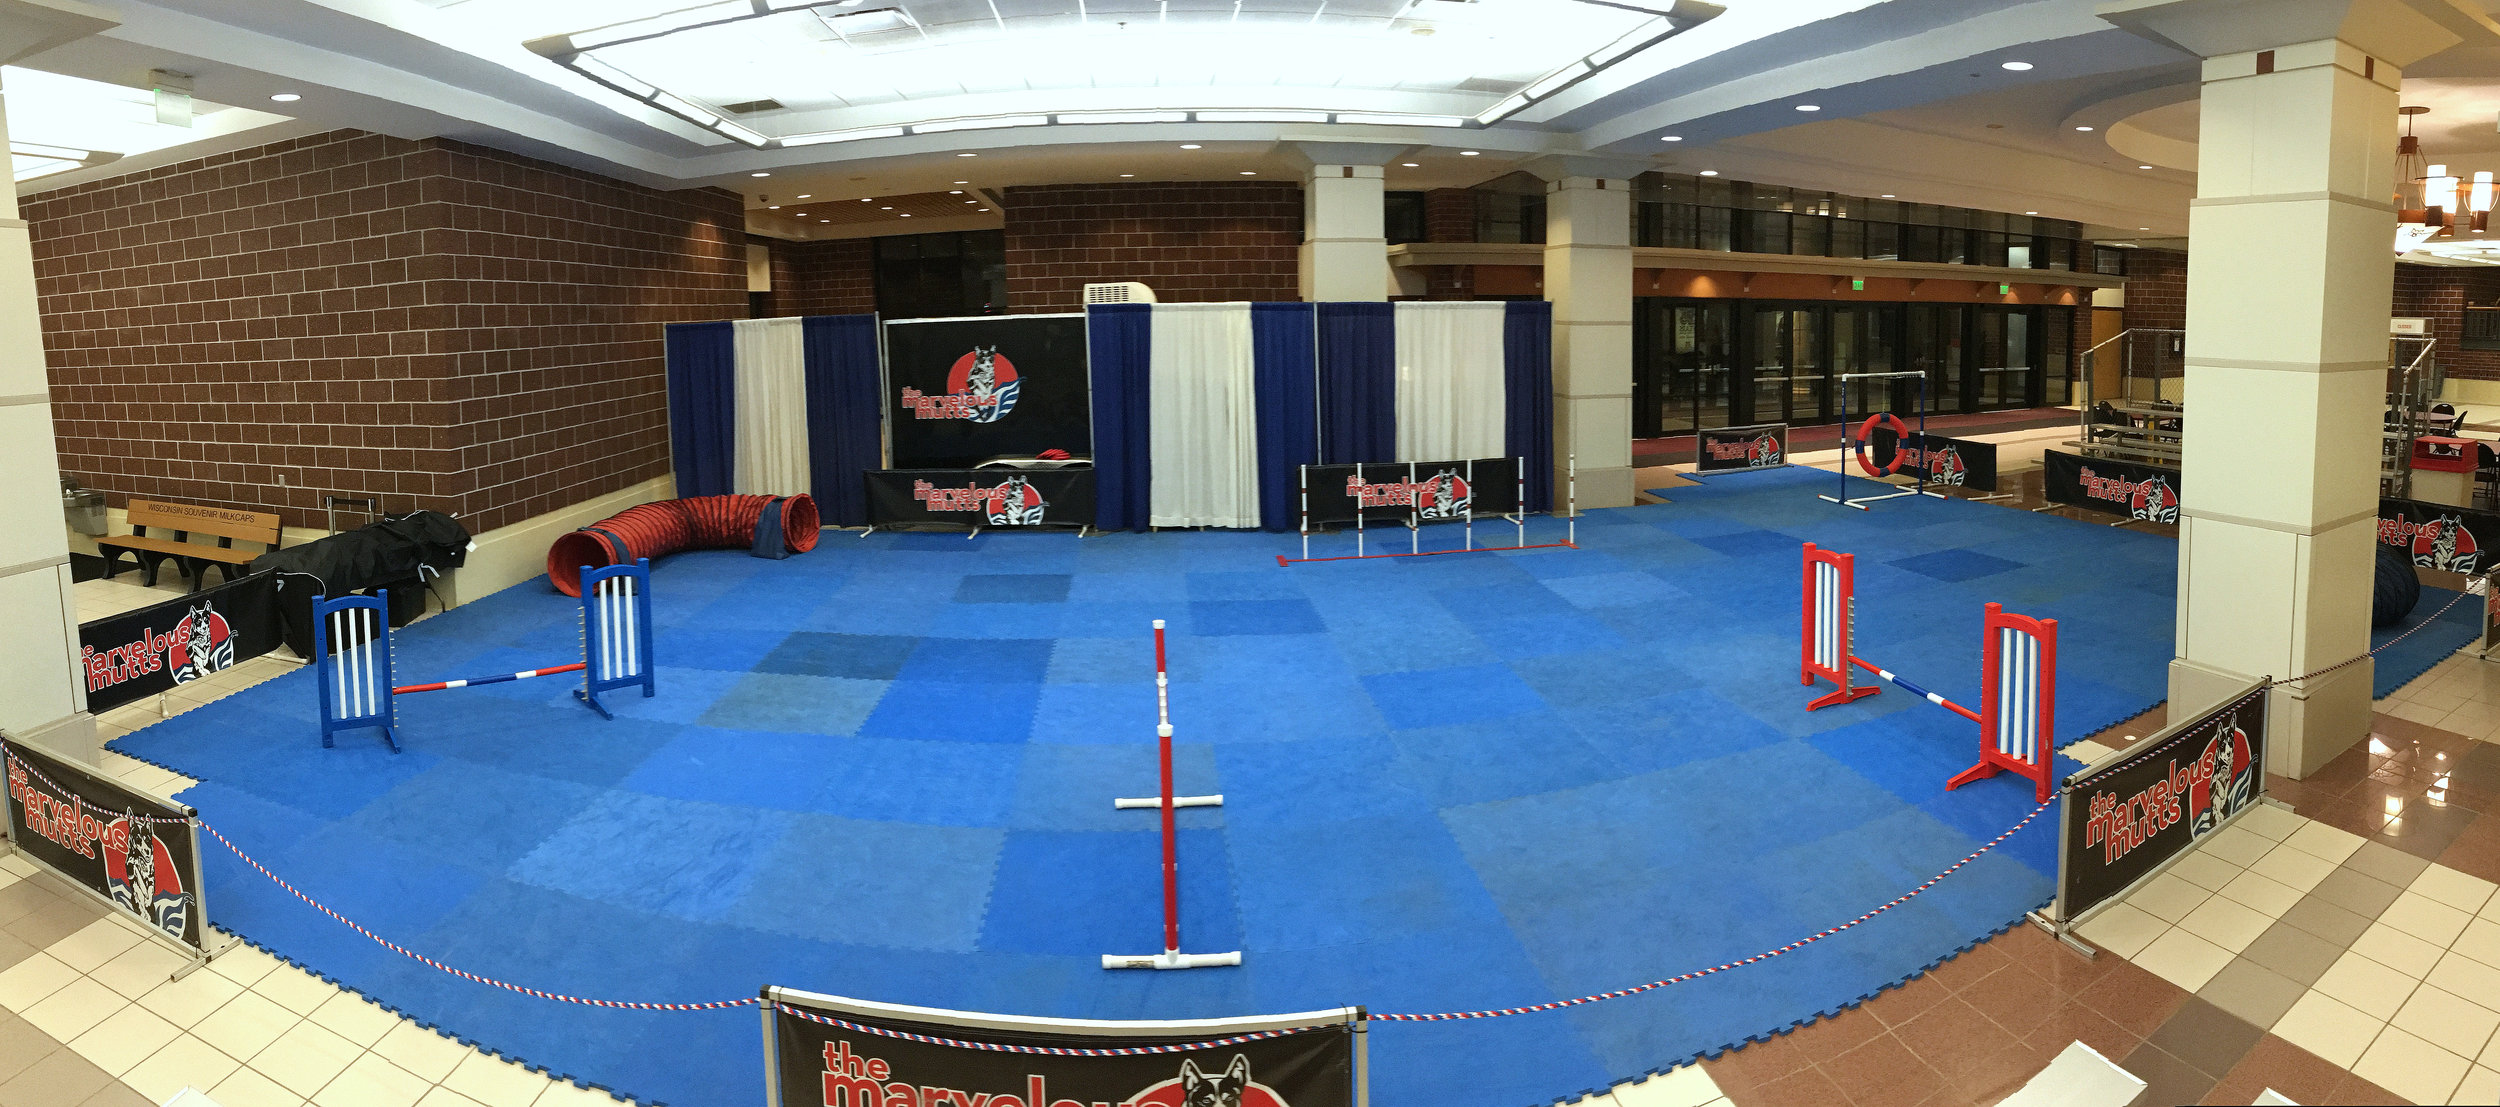 Our set-up for indoor frisbee/agility shows. We can accommodate unique space challenges, and we bring our own foam mat flooring for the dogs' safety.